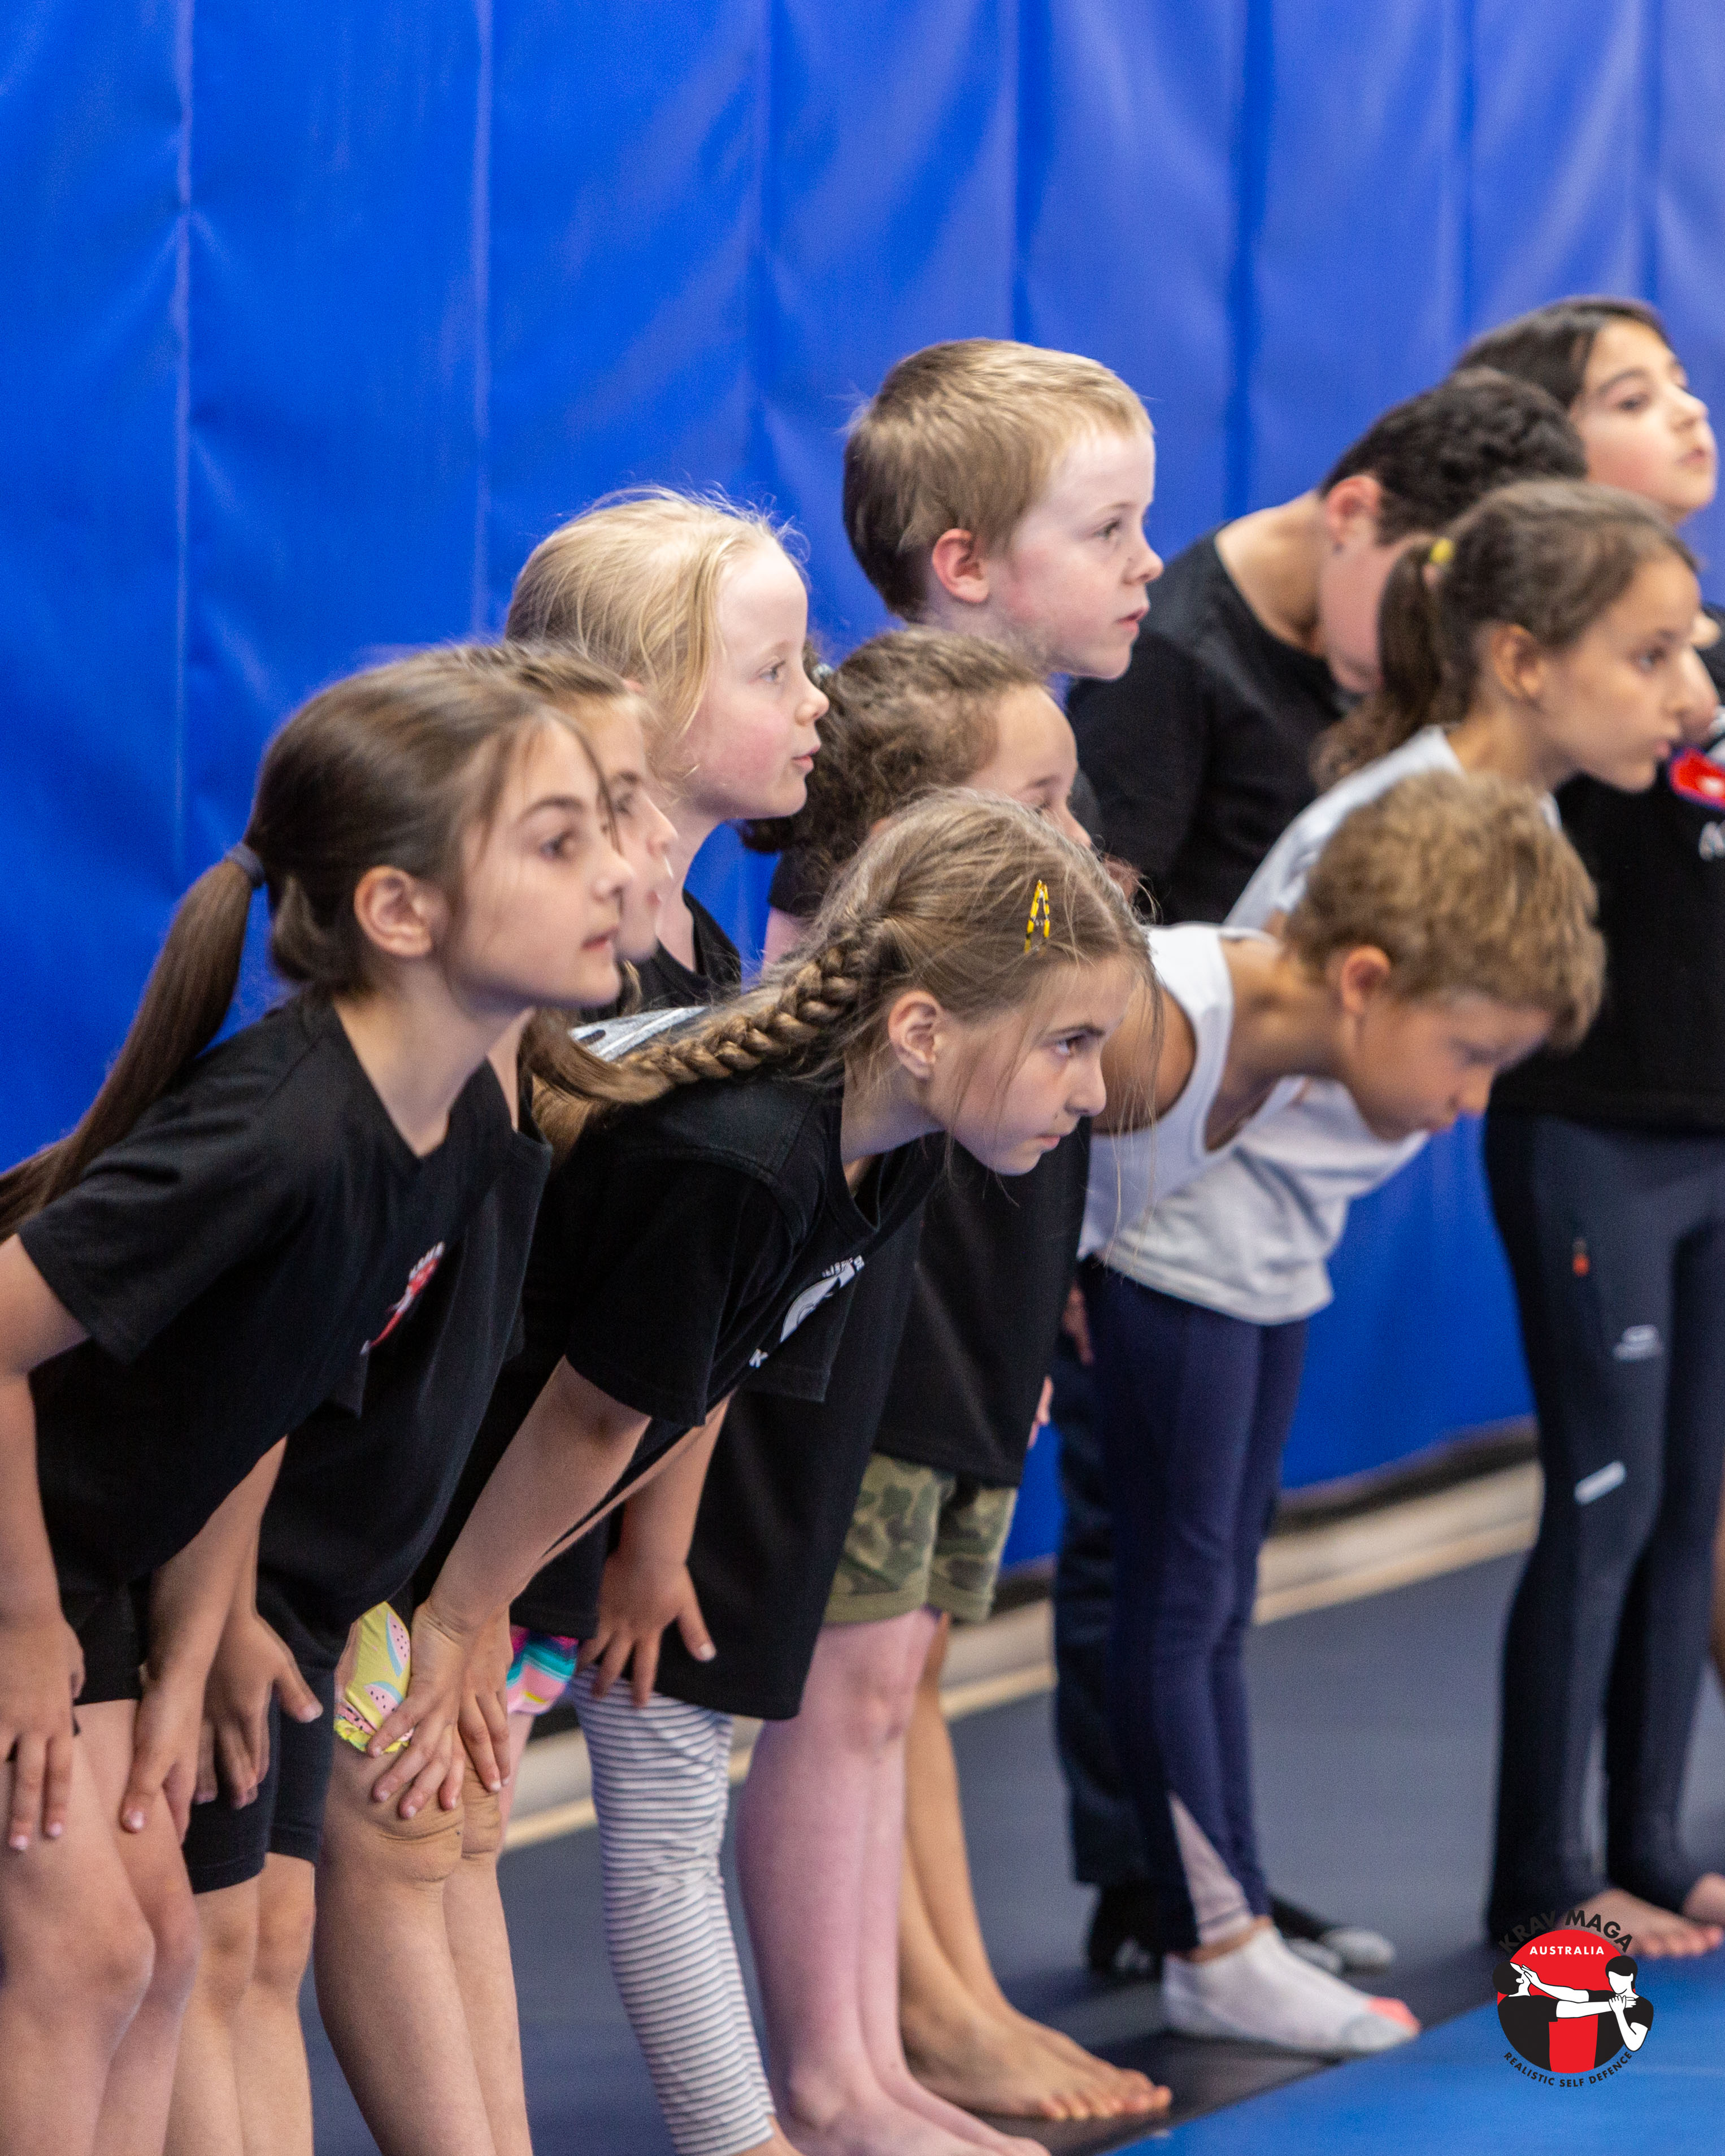 Small children bowing to instructors after Krav Maga class